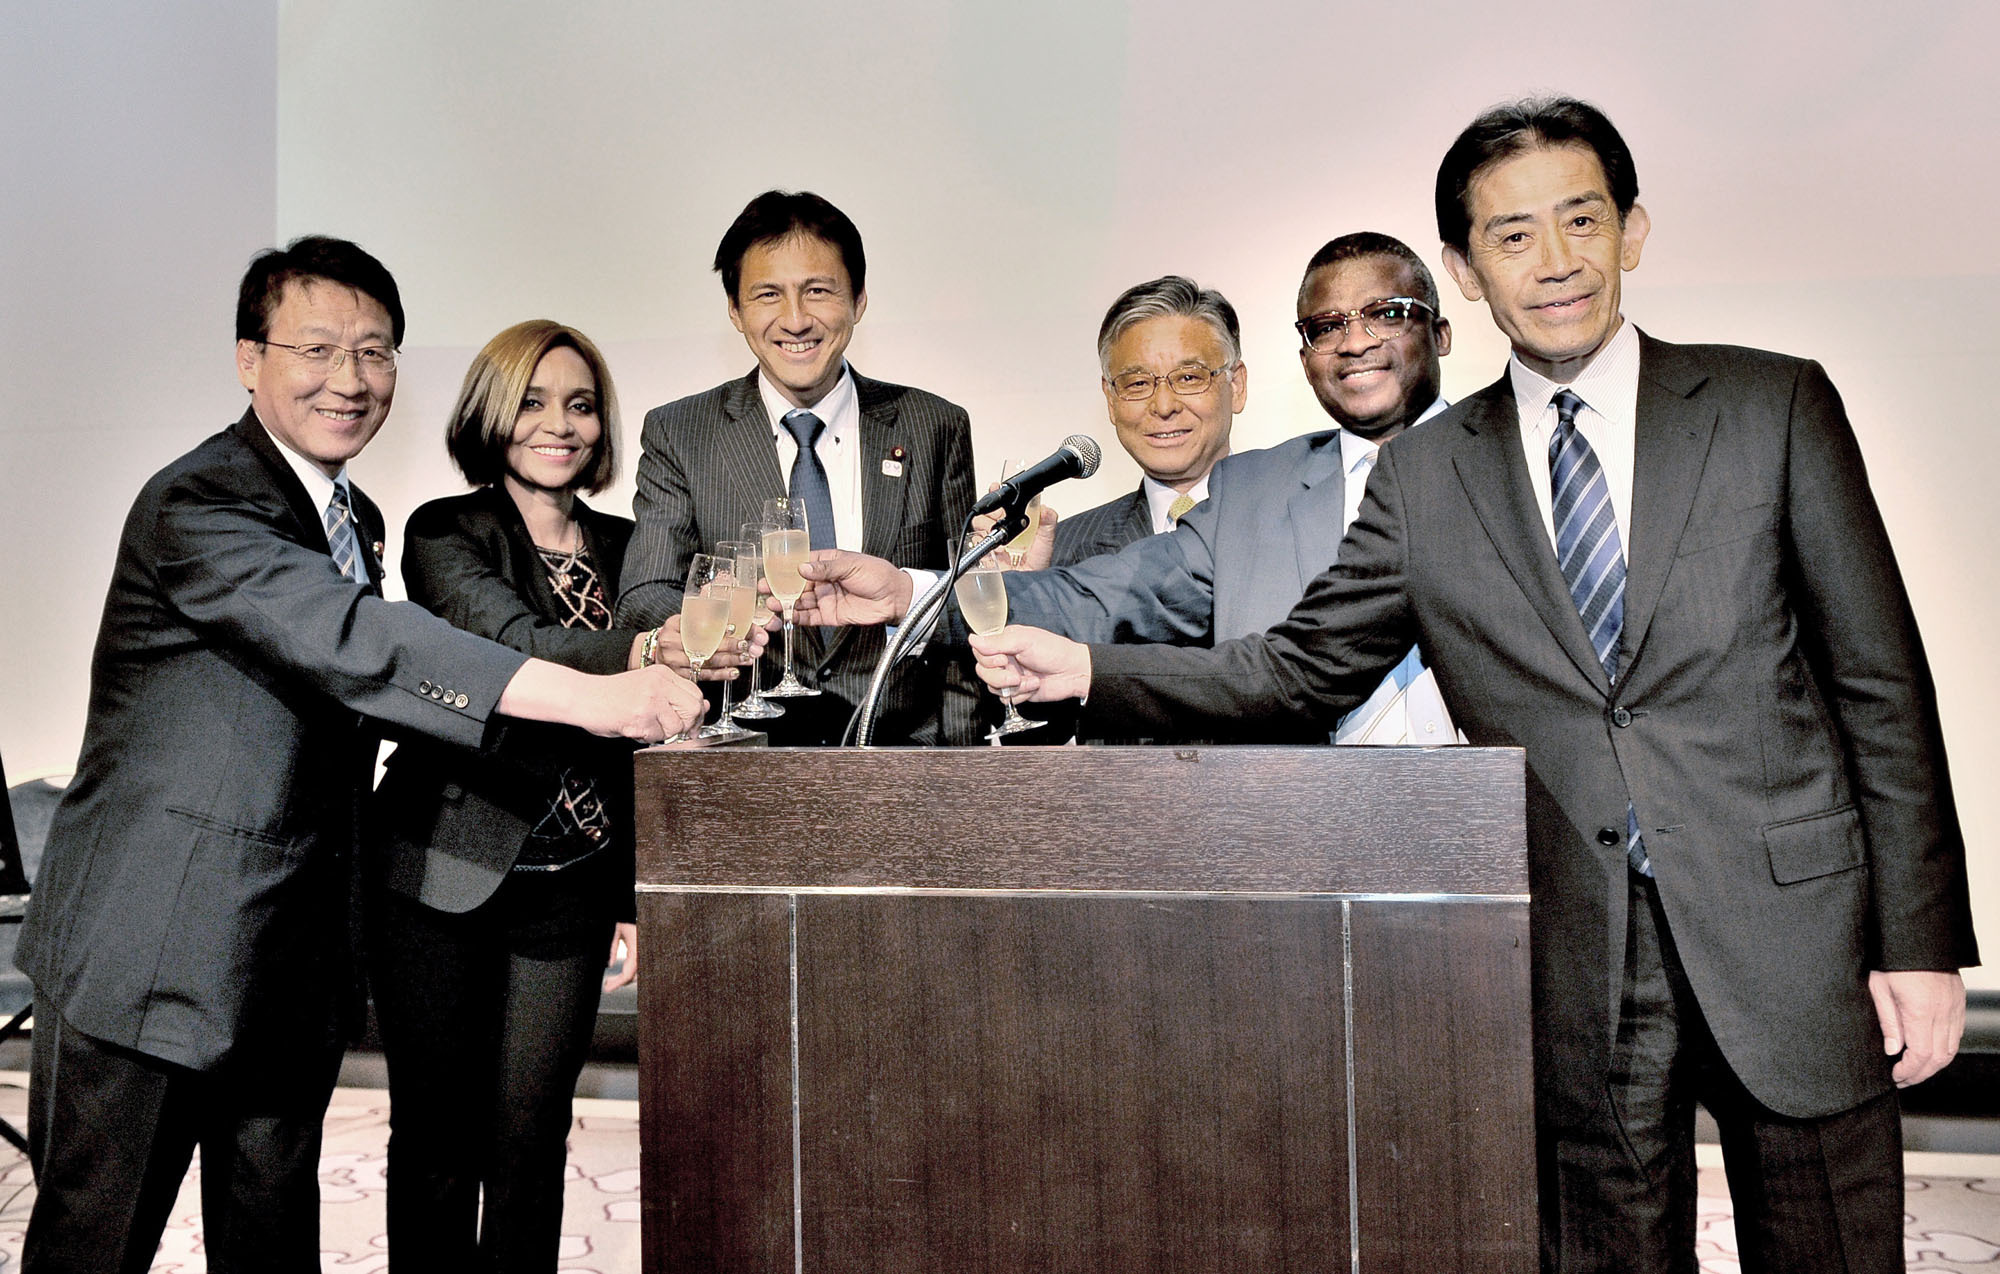 Botswana's Ambassador Jacob Dickie Nkate (second from right) shares a toast with (from left) acting Chairman of the Japan-African Union Parliamentary Friendship Association Asahiko Mihara; Botswana Tourism Marketing Manager Obenne Mbaakanyi; Parliamentary Vice-Minister for Foreign Affairs Shunsuke Takei; Japan National Tourism Organization President Ryoichi Matsuyama; and Chairman of the Japan-African Union Parliamentary Friendship Association Ichiro Aisawa during a reception to celebrate Botswana's 50th National Day at Tokyo Marriott Hotel on Sept. 30. | YOSHIAKI MIURA